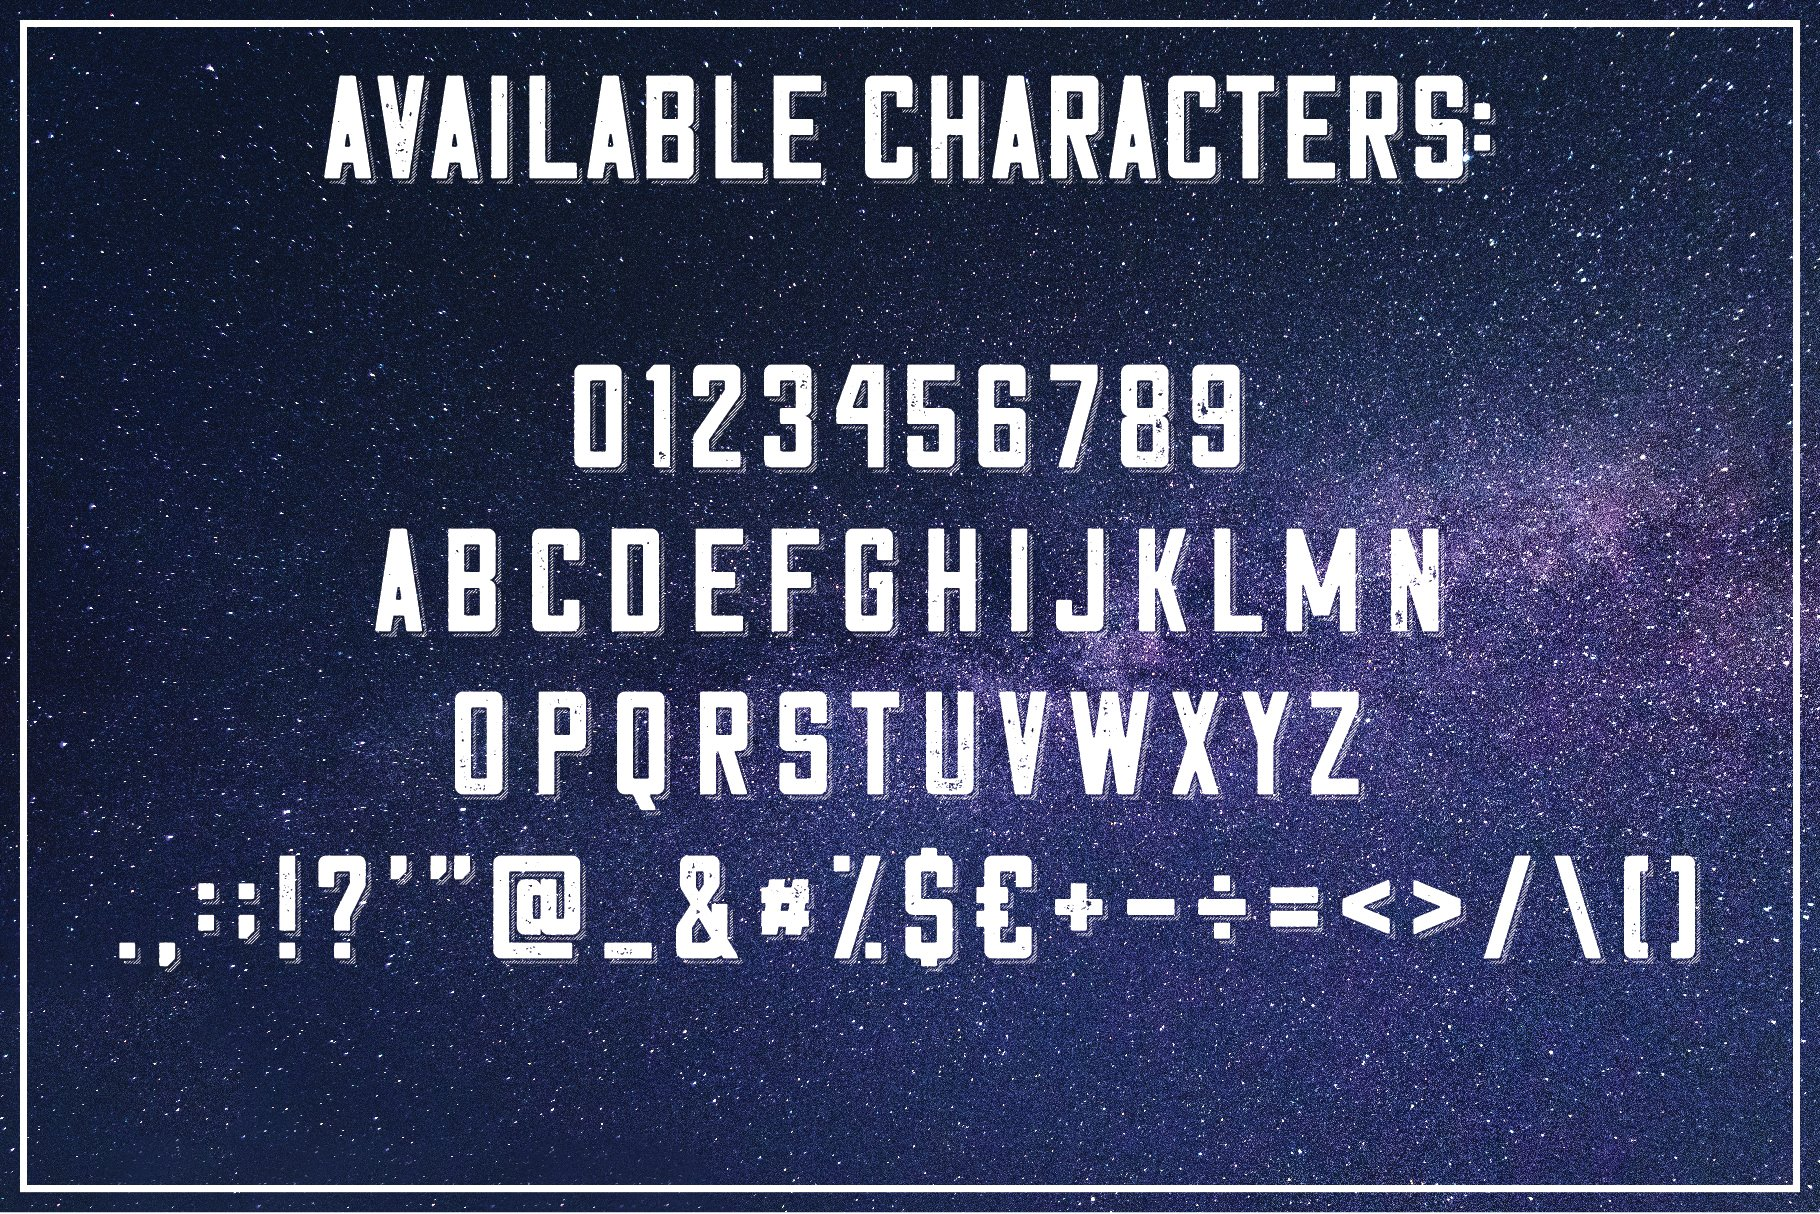 All the features of this font are presented against the background of the starry sky.